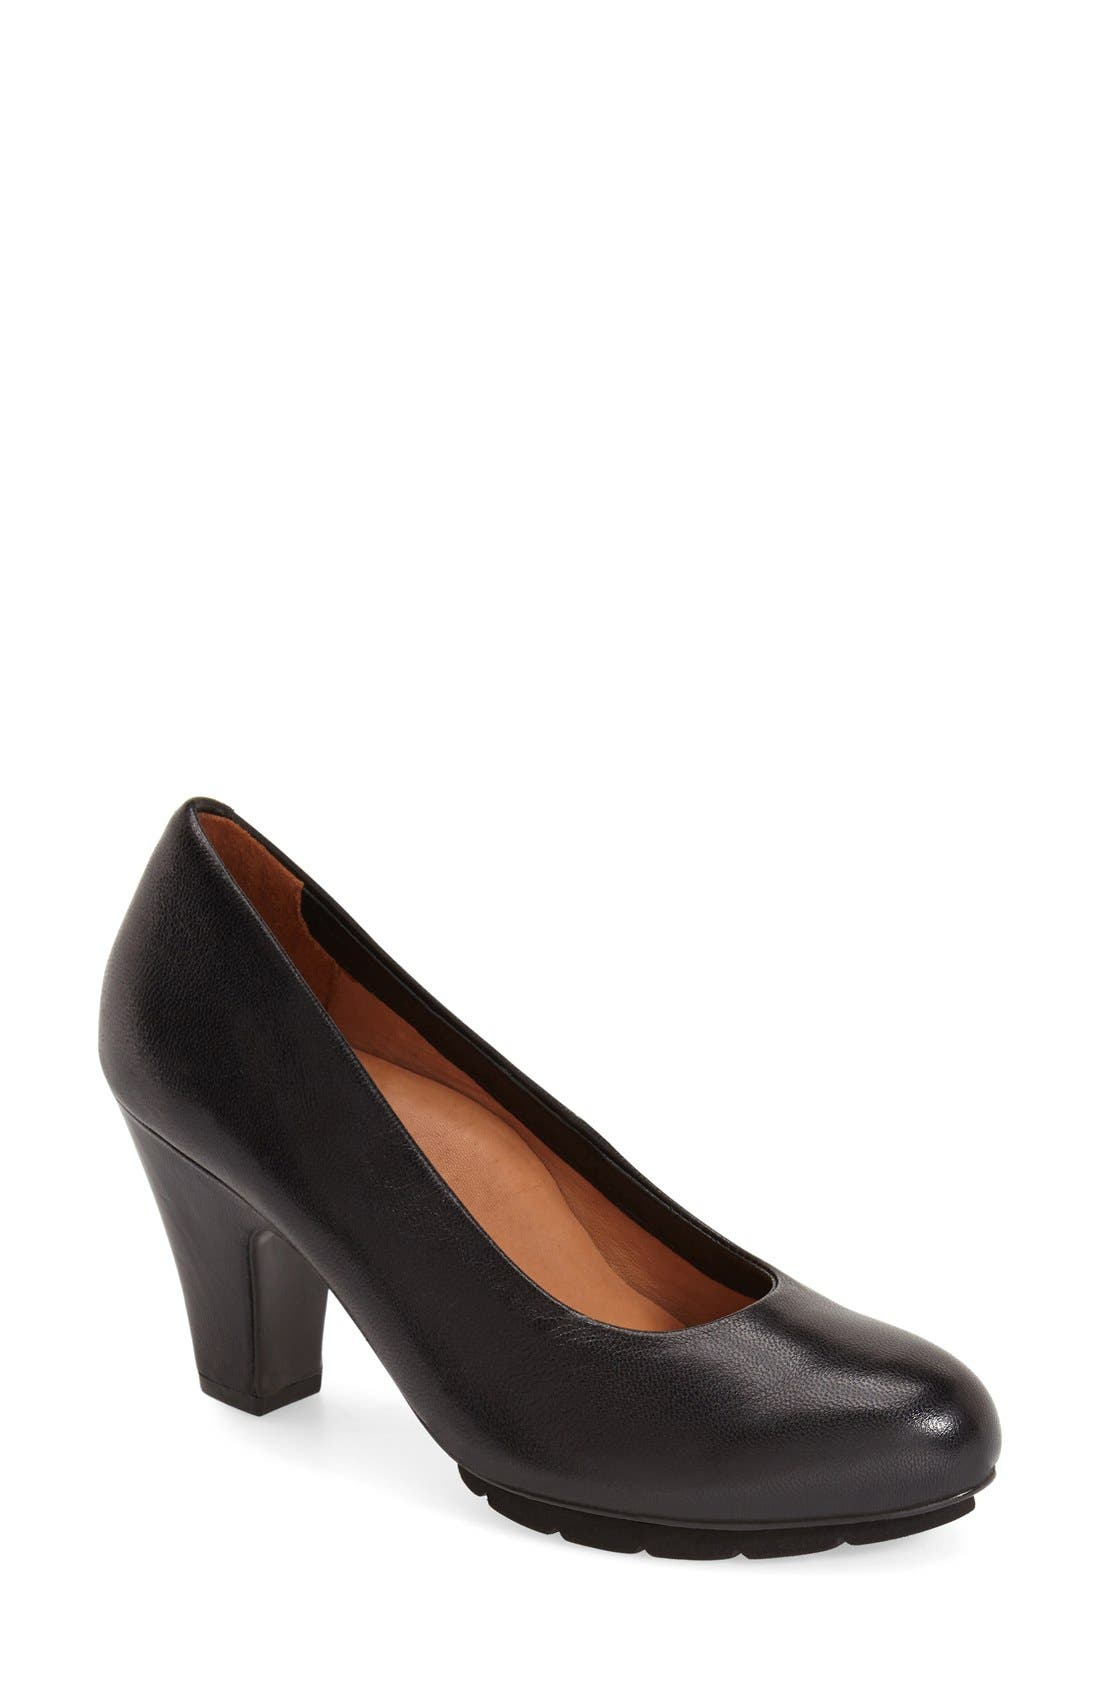 L'Amour des Pieds 'Fabienne' Round Toe Pump,                             Main thumbnail 1, color,                             001